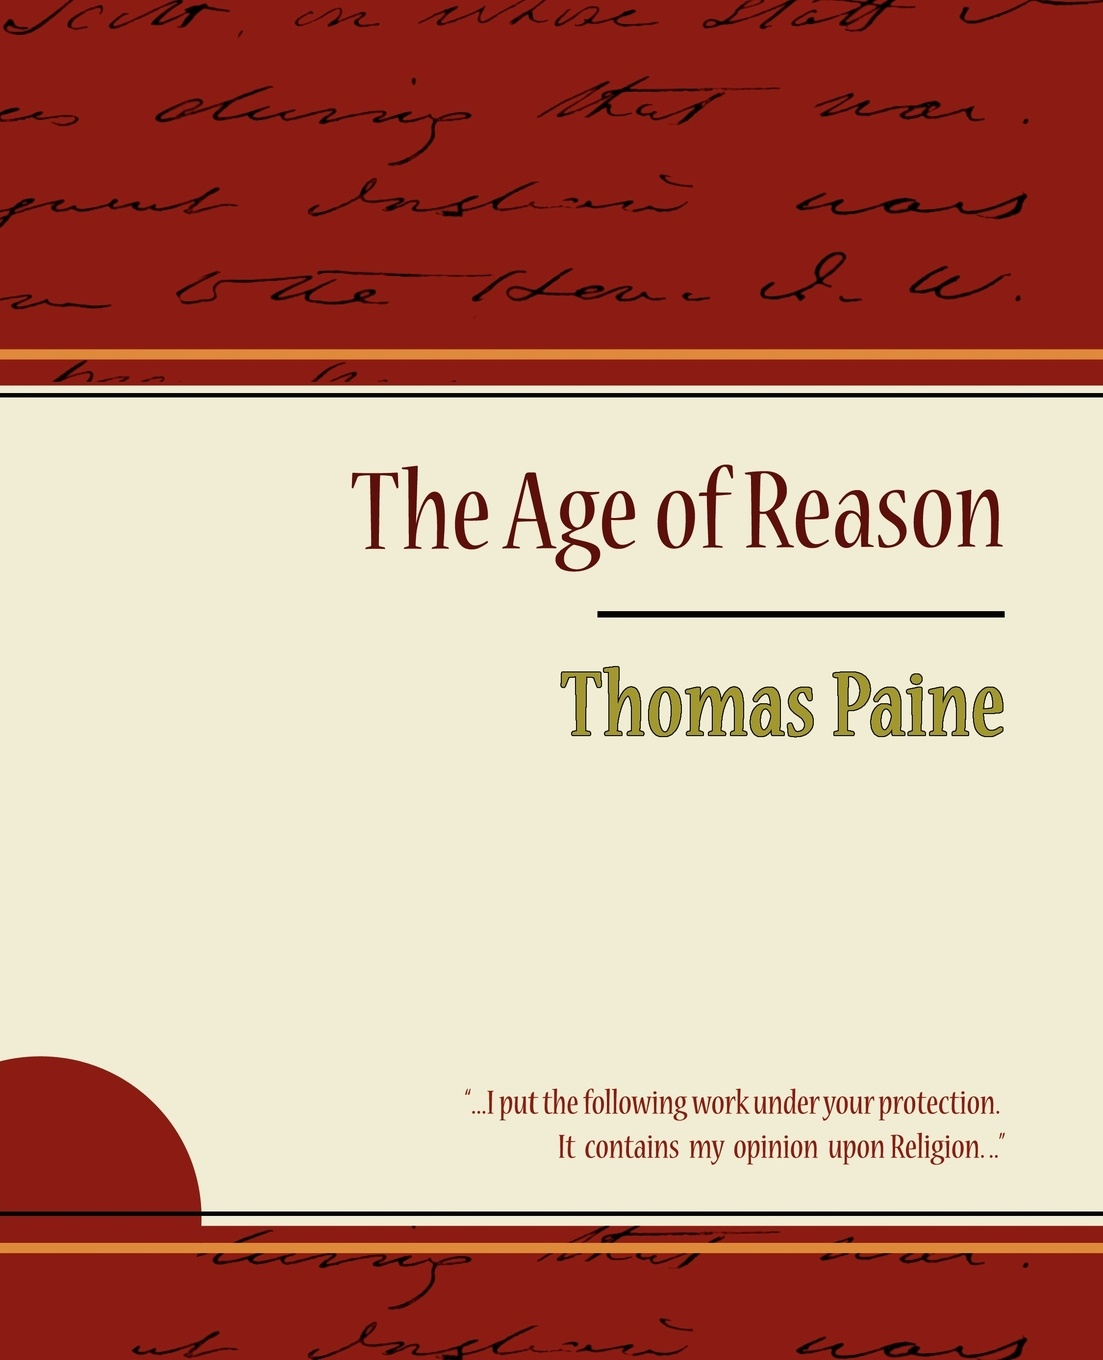 Фото - Thomas Paine, Thomas Paine The Age of Reason - Thomas Paine joseph moreau testimonials to the merits of thomas paine